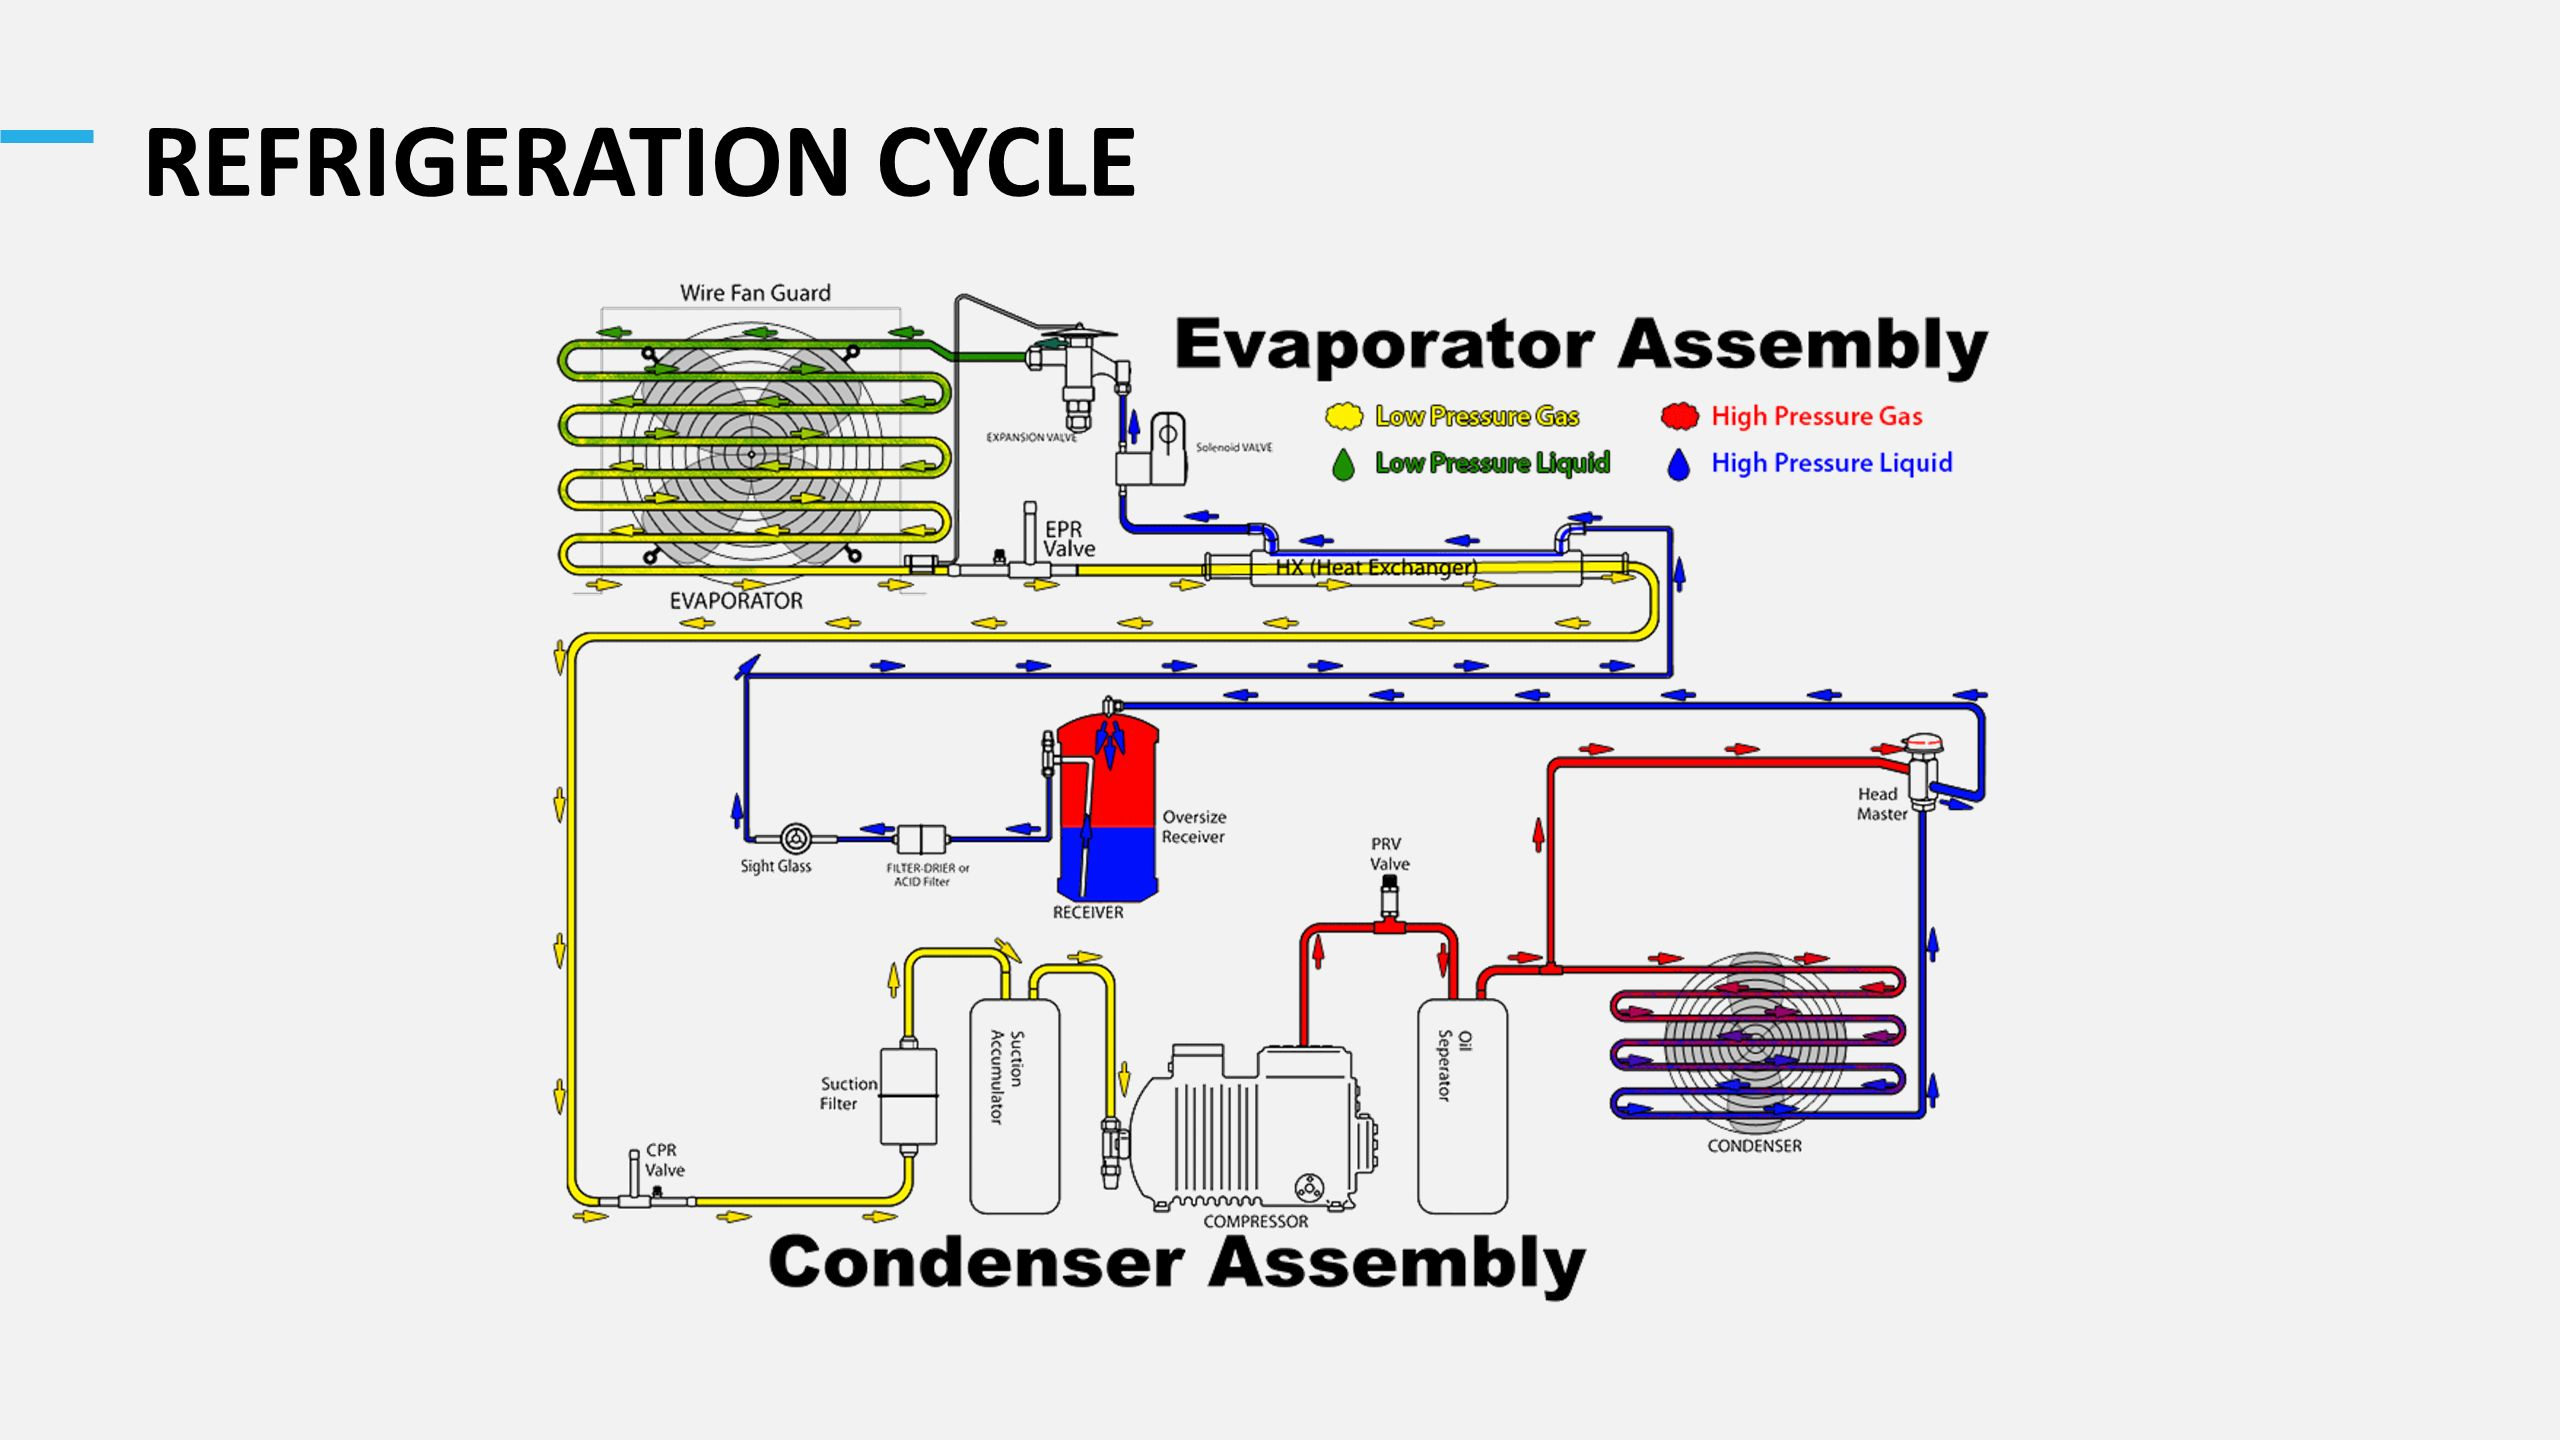 Thoughtful cooling engineering student certificate workshop ppt 13 refrigeration cycle the trainer to explain detailed refrigeration cycle using the schematic shown in the picture pooptronica Images